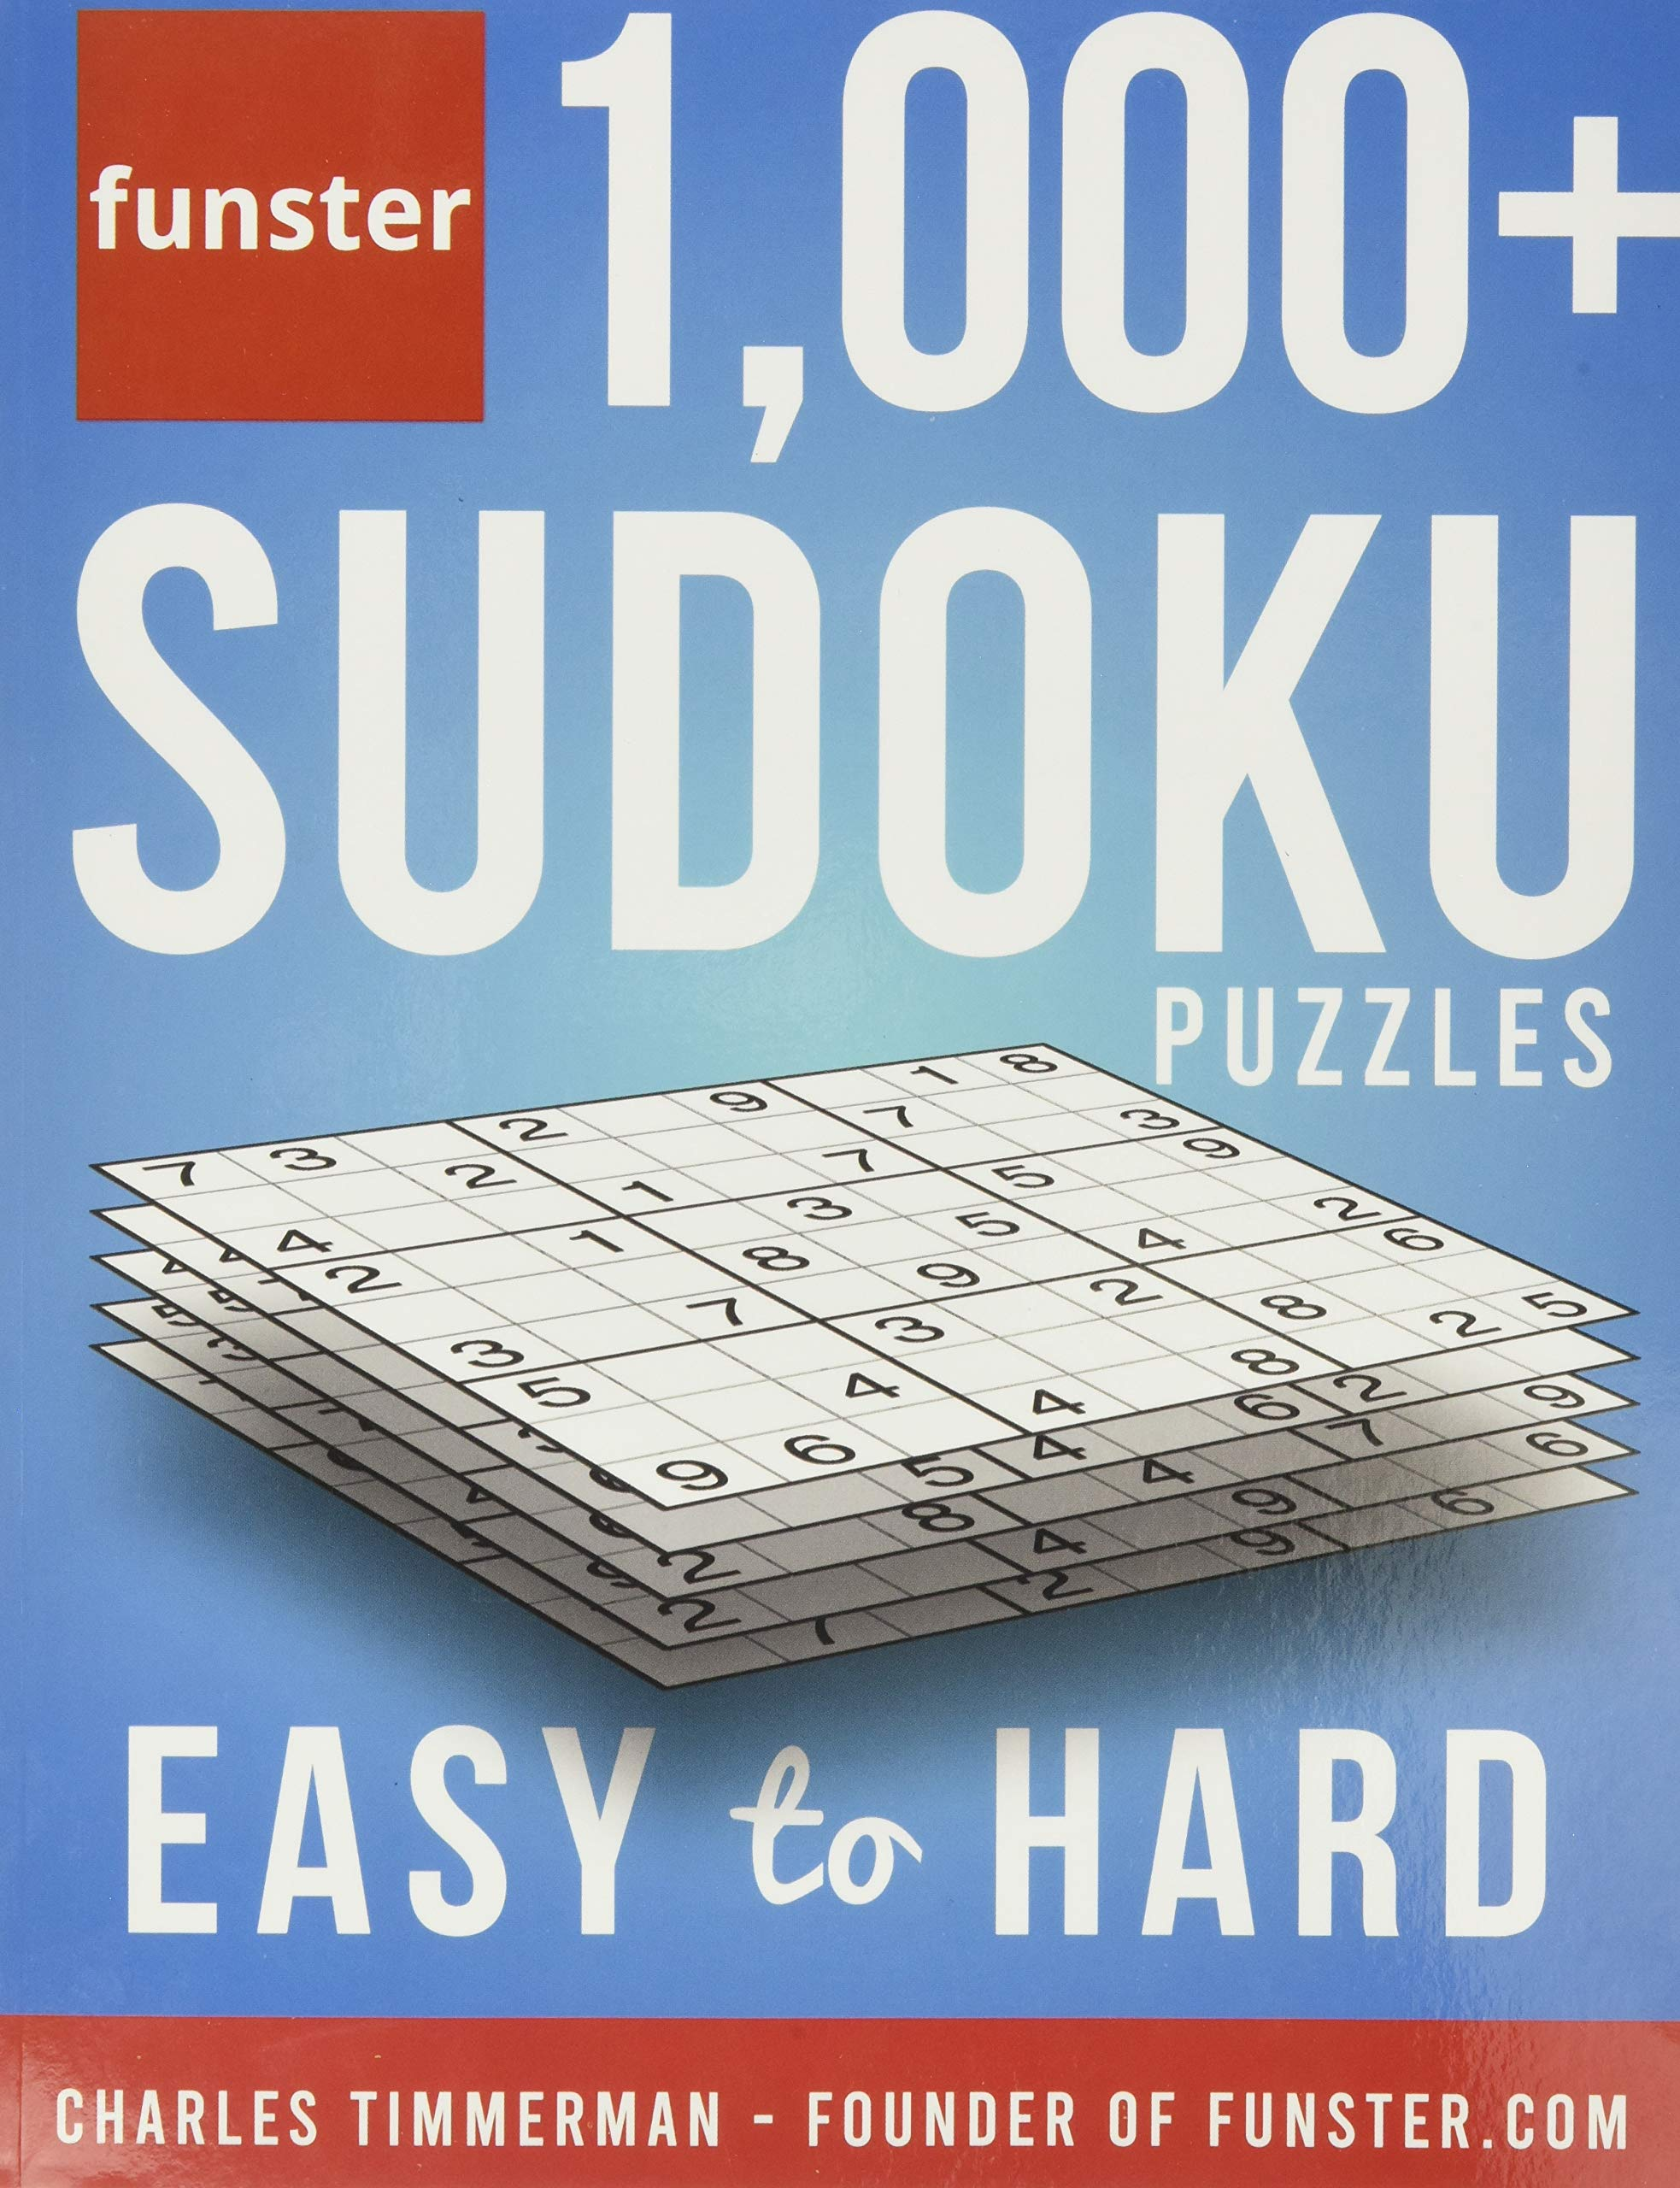 Funster 1000 + Sudoku Puzzles Easy to Hard Sudoku Puzzle Book for Adults